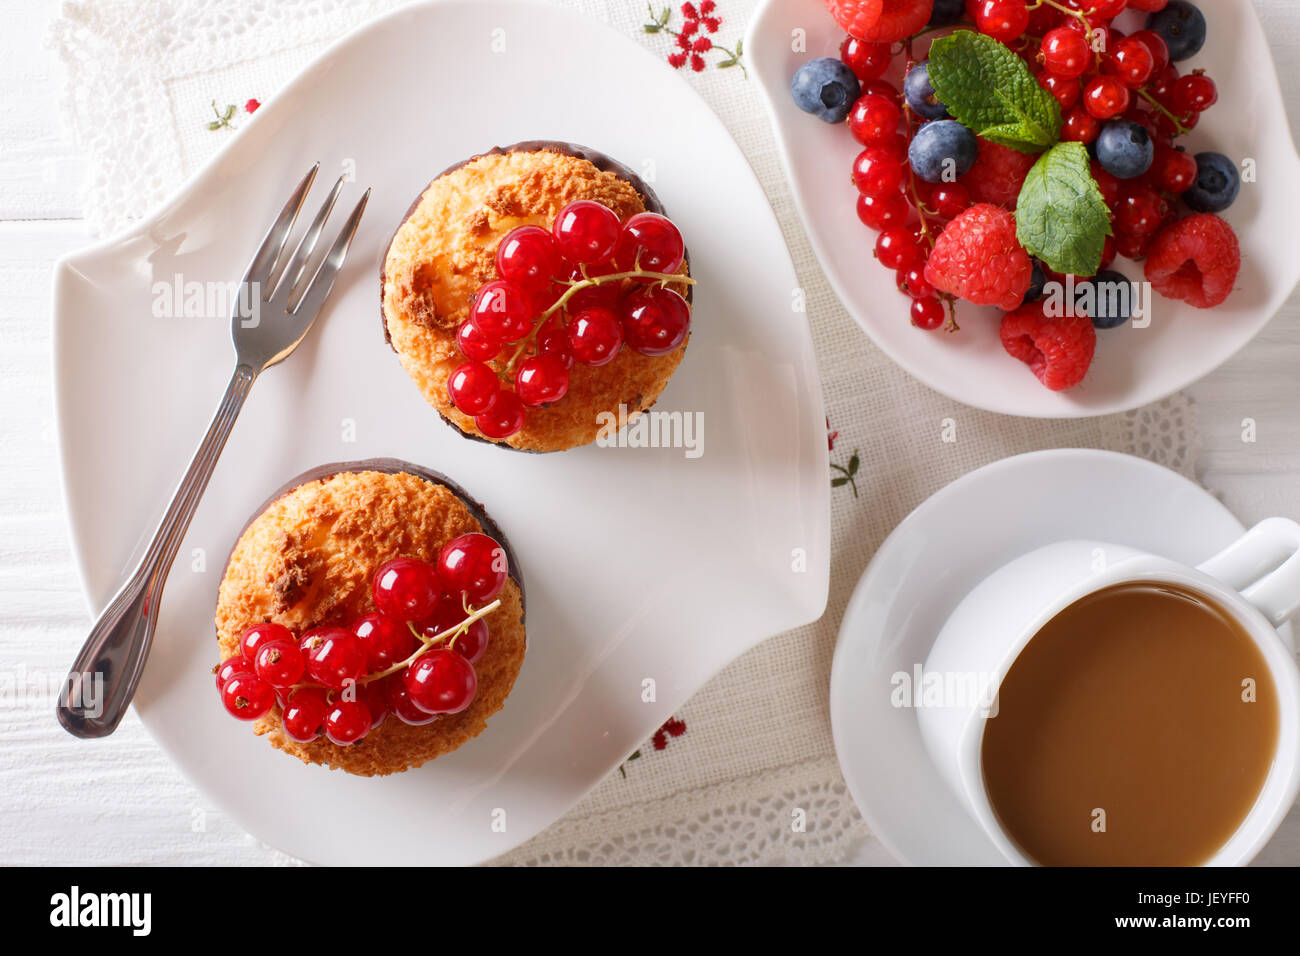 Delicious breakfast, coconut muffins, berries and coffee with milk close-up on the table. horizontal view from above - Stock Image